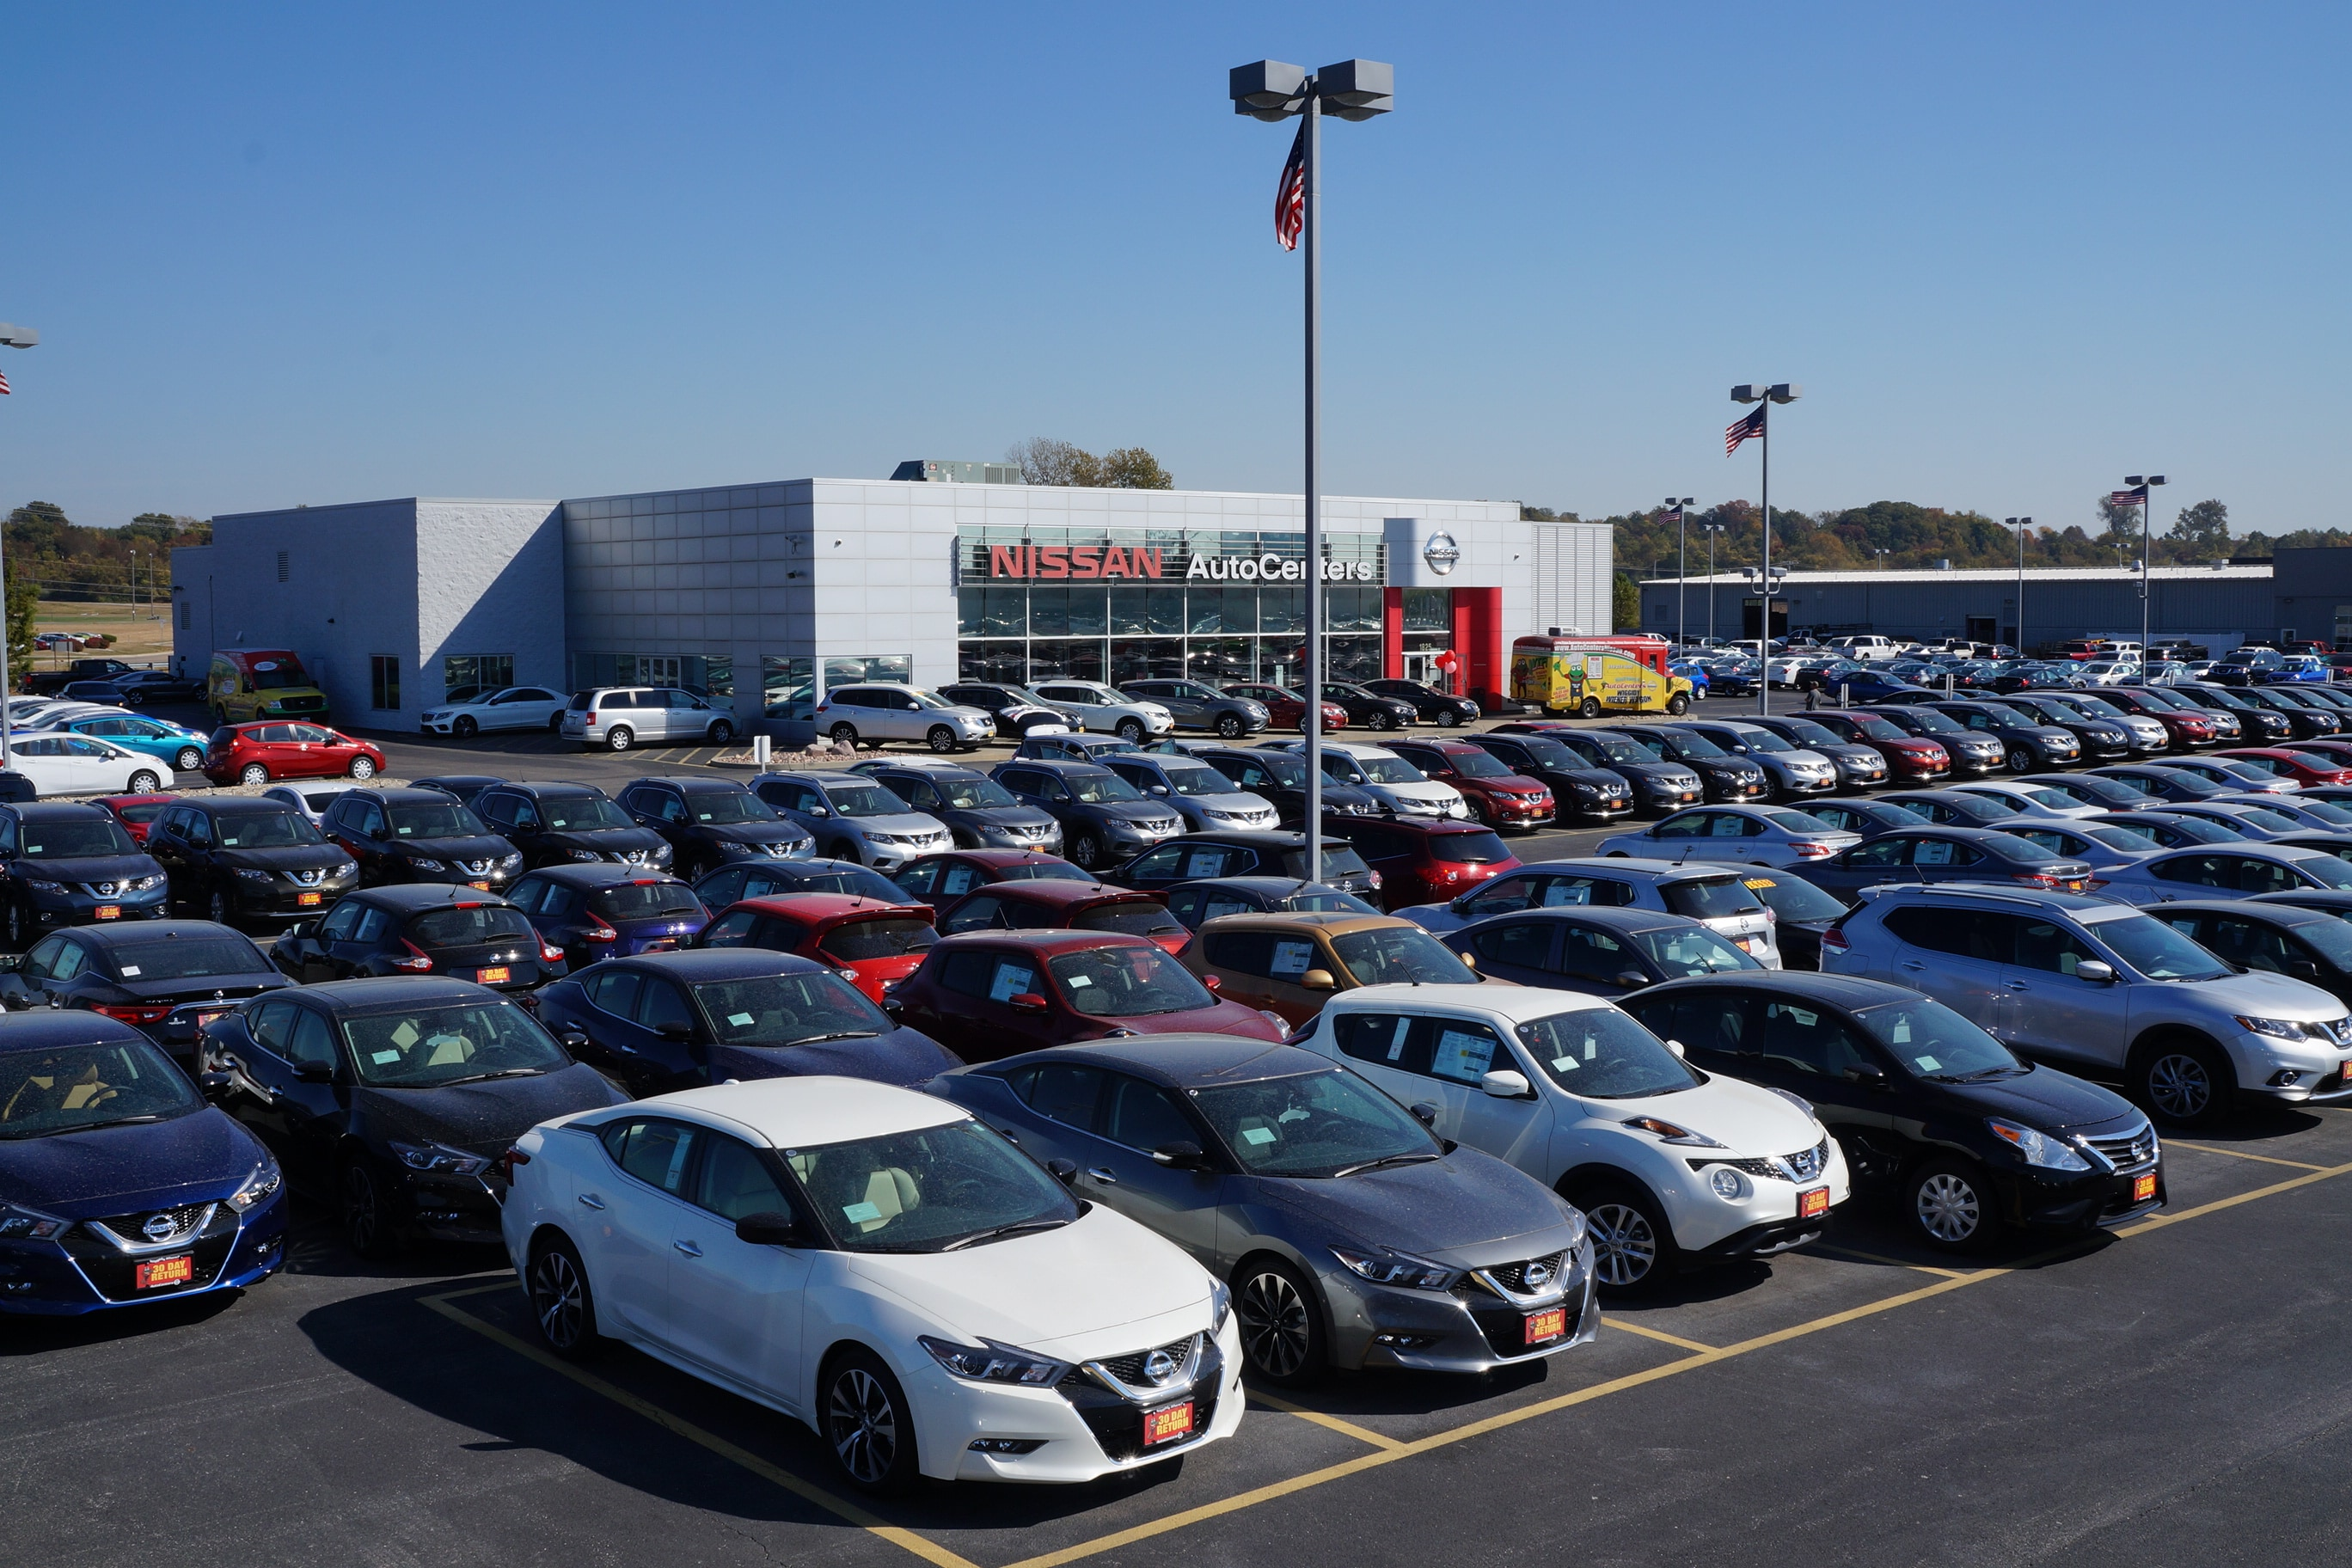 autocenters-nissan-inventory-outside-view